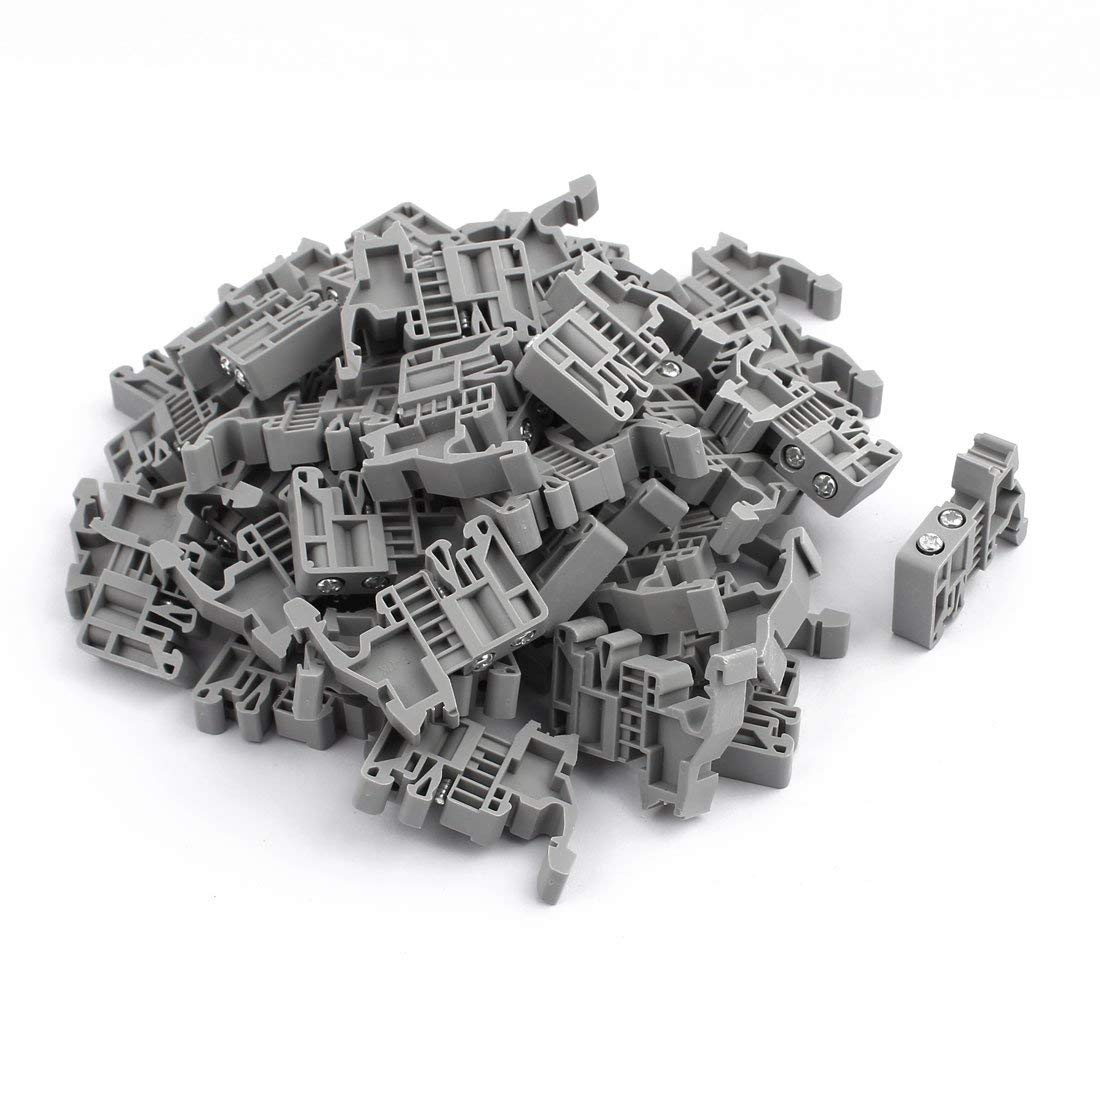 Aexit 50 Pcs E/UK 35mm Din DIN Rail End Screw Clamp Terminal Fixed Block Gray